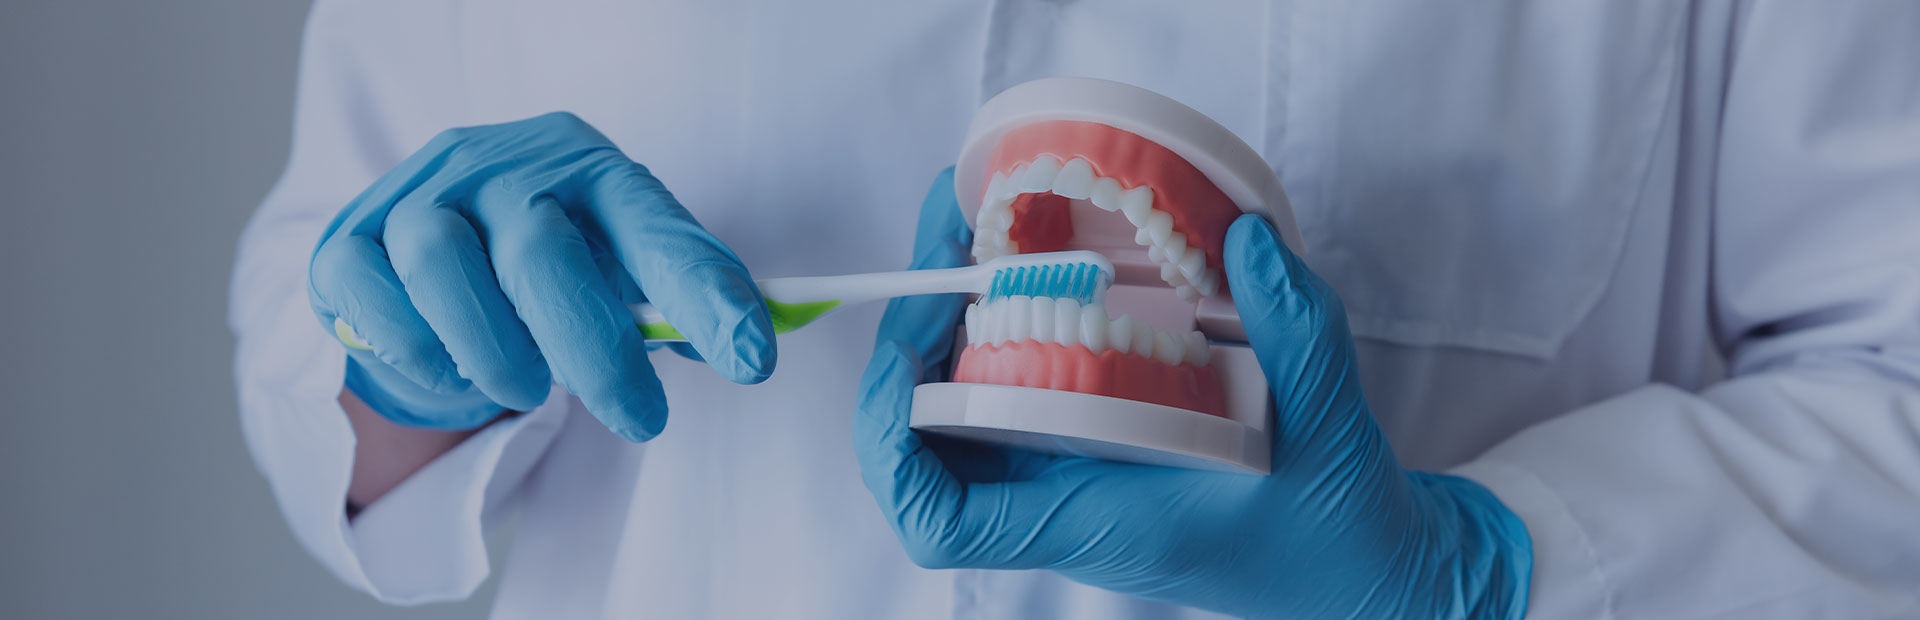 A close up of a set of dentures being held by a dental technician, demonstrating how to brush dentures before instructing on how to use Fixodent denture adhesive.